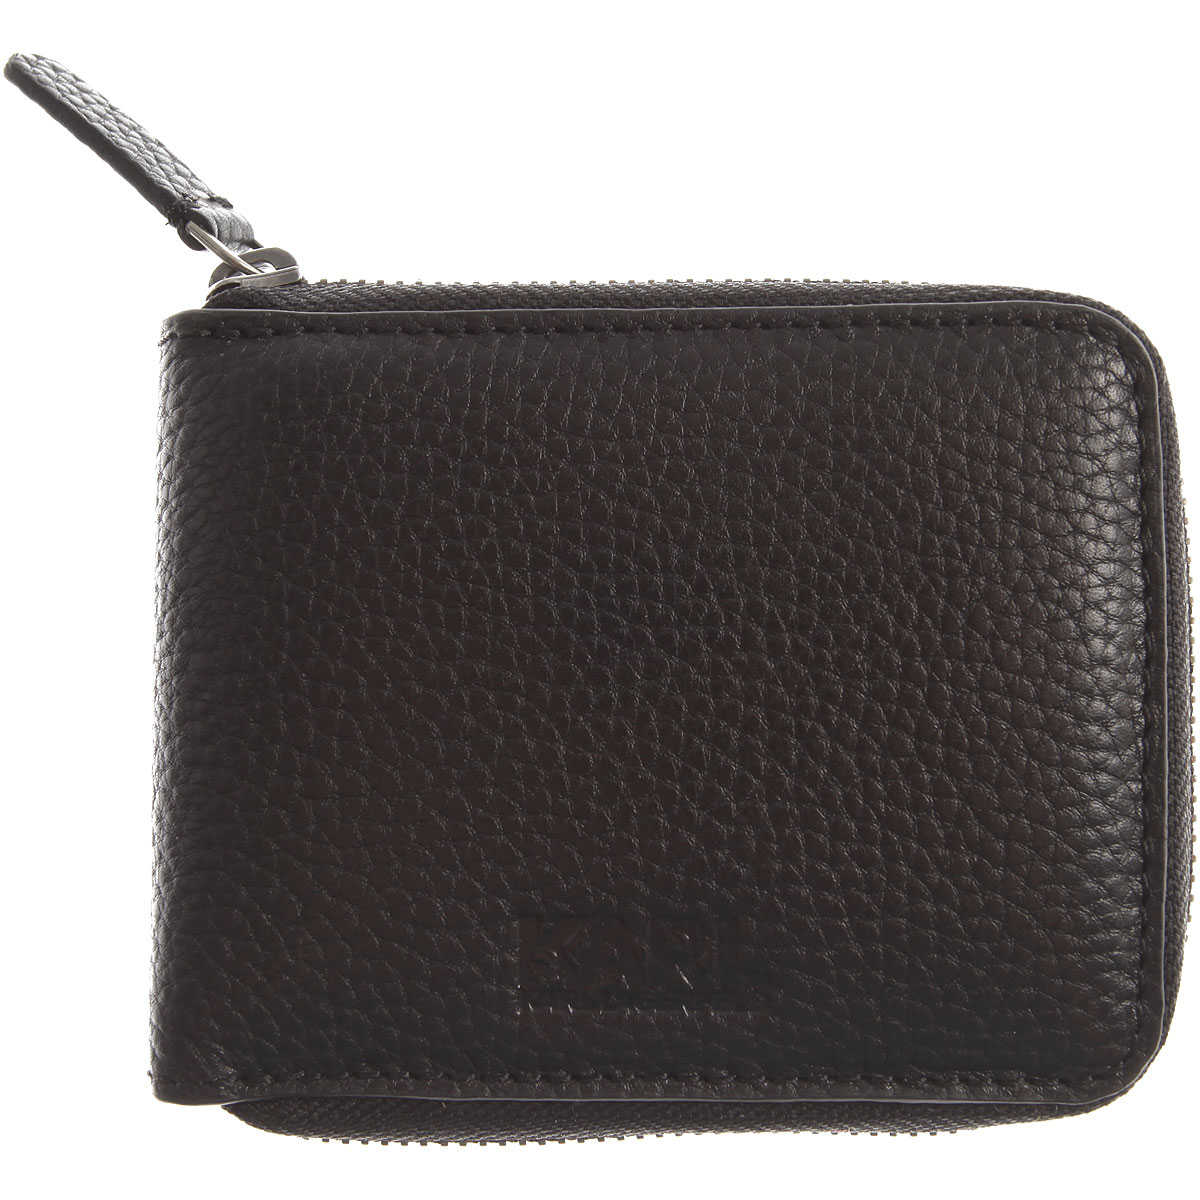 Karl Lagerfeld Wallet for Men On Sale Black SE - GOOFASH